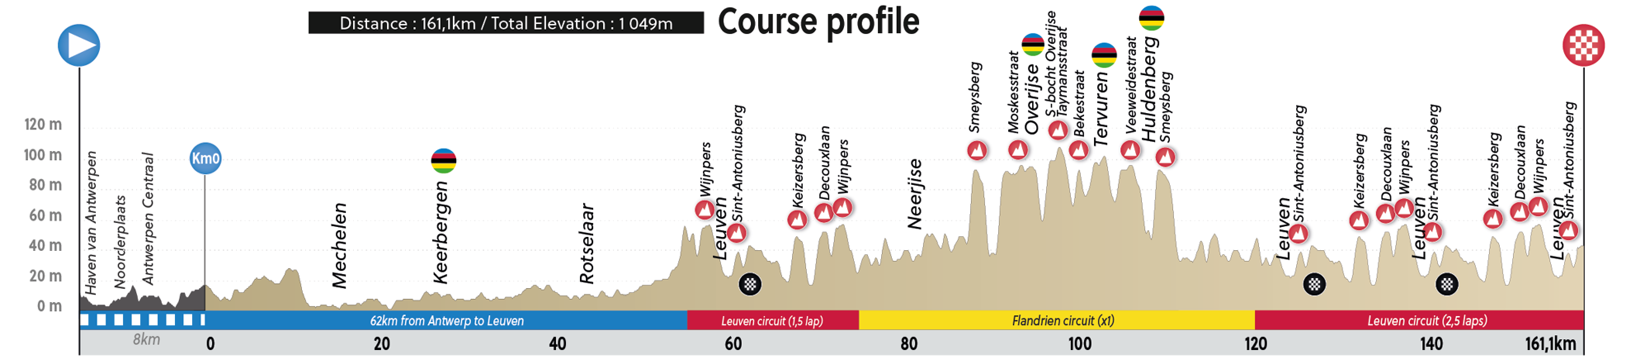 Preview Worlds U23 Road Race 2021 Profile